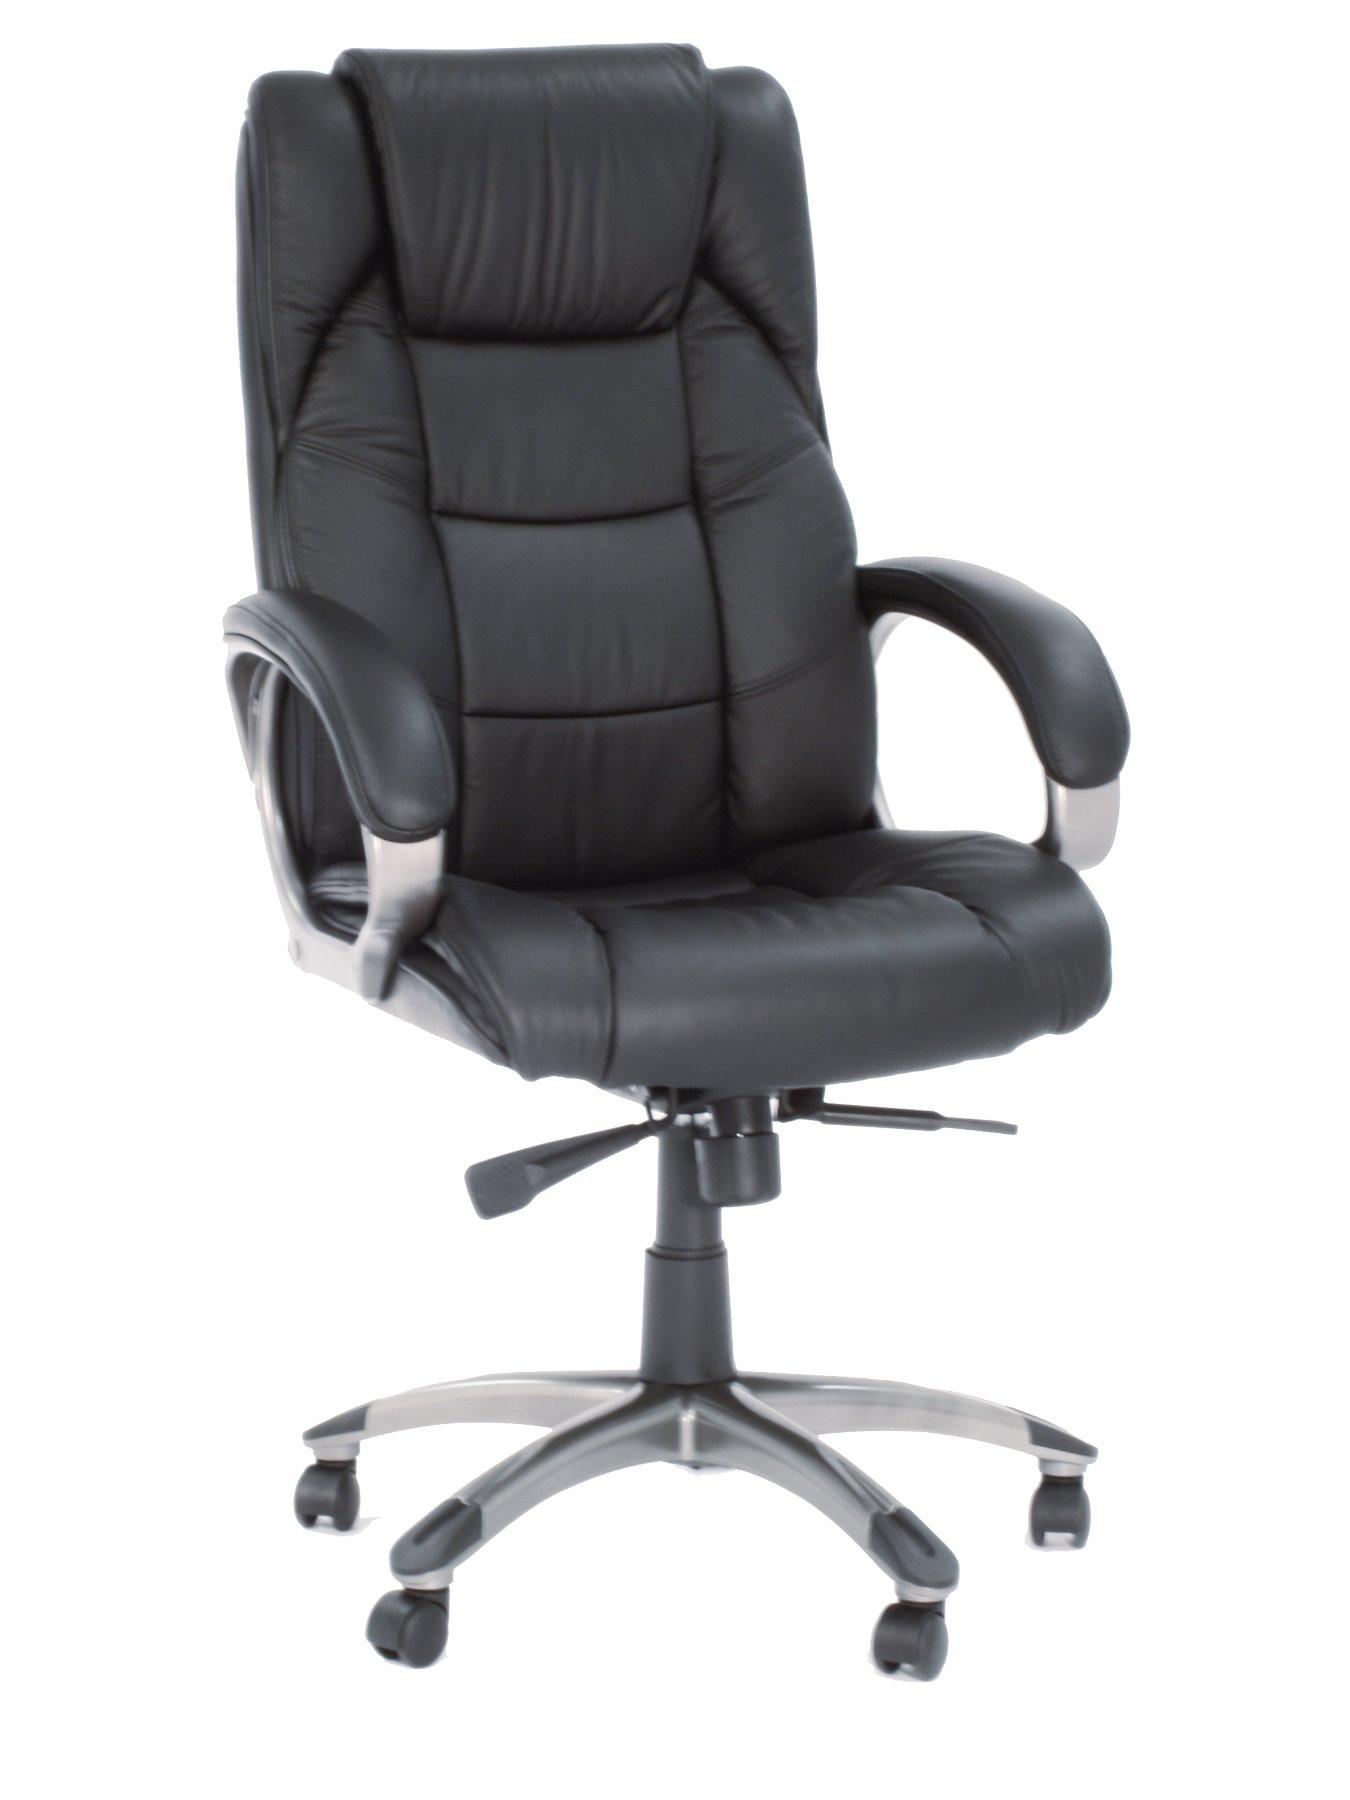 Northland Leather Office Chair - Black, Black,Brown